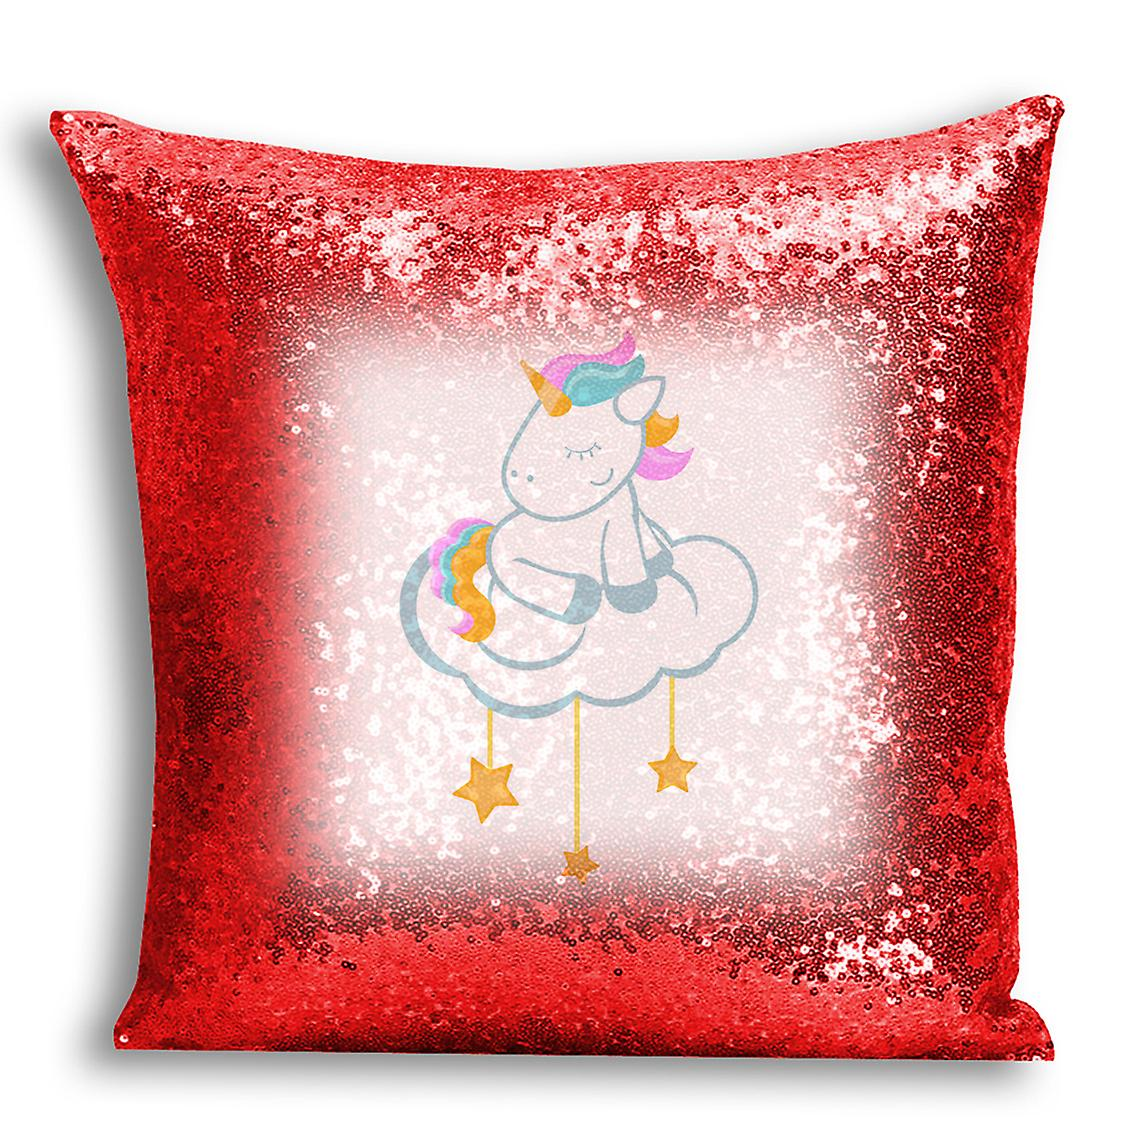 Red Sequin Inserted I For Cover tronixsUnicorn Printed 1 Design Decor With Home CushionPillow YDH9WIE2